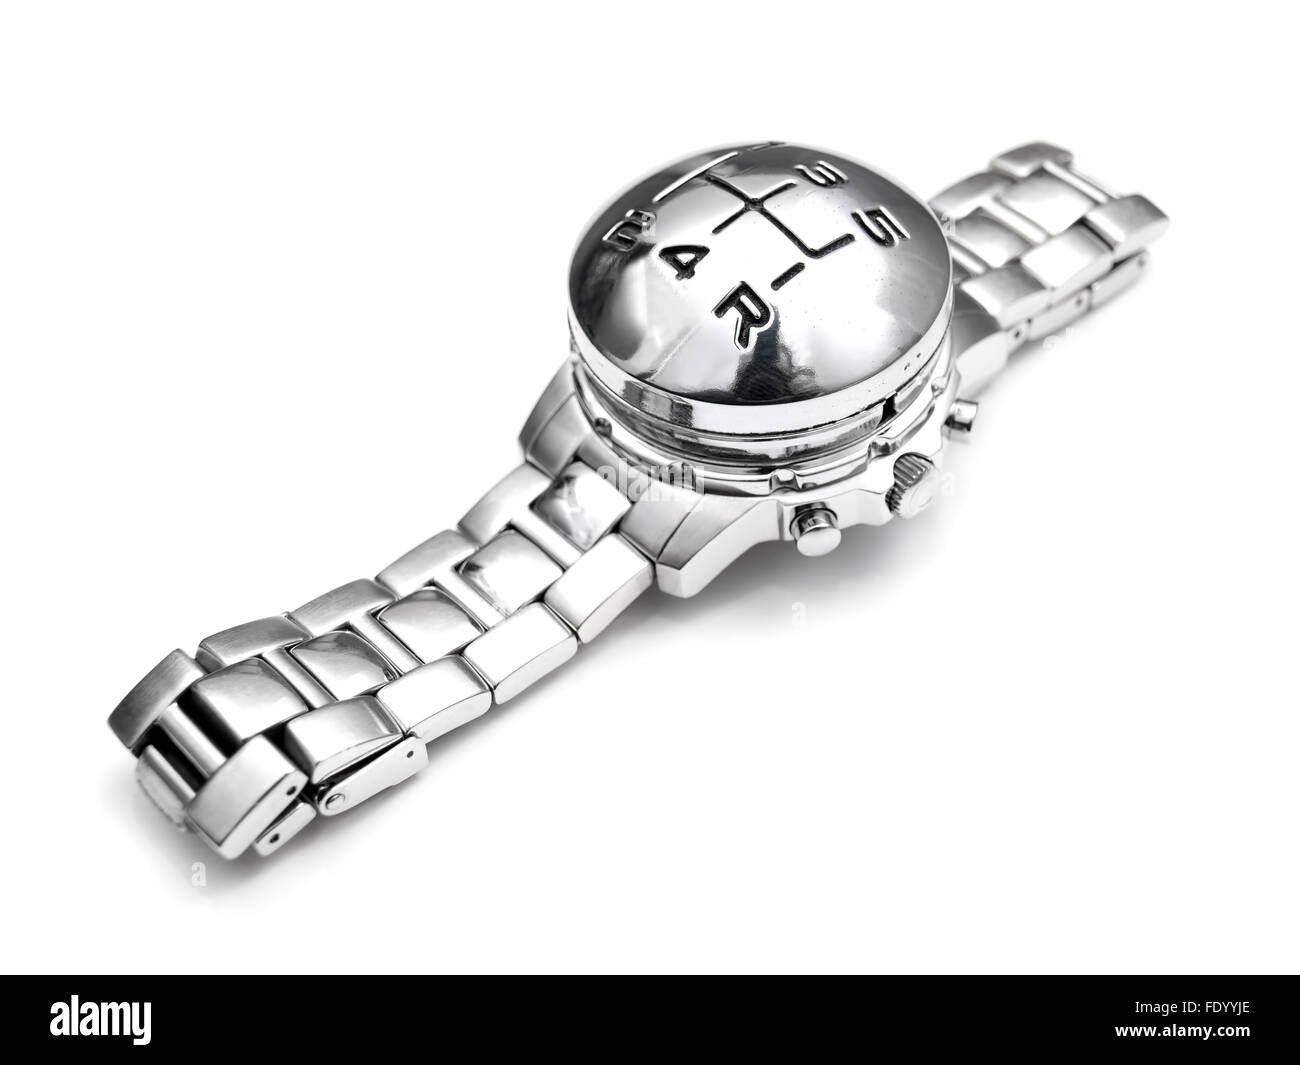 Wristwatch with gearshift speed marks instead of clock face on a white background. - Stock Image